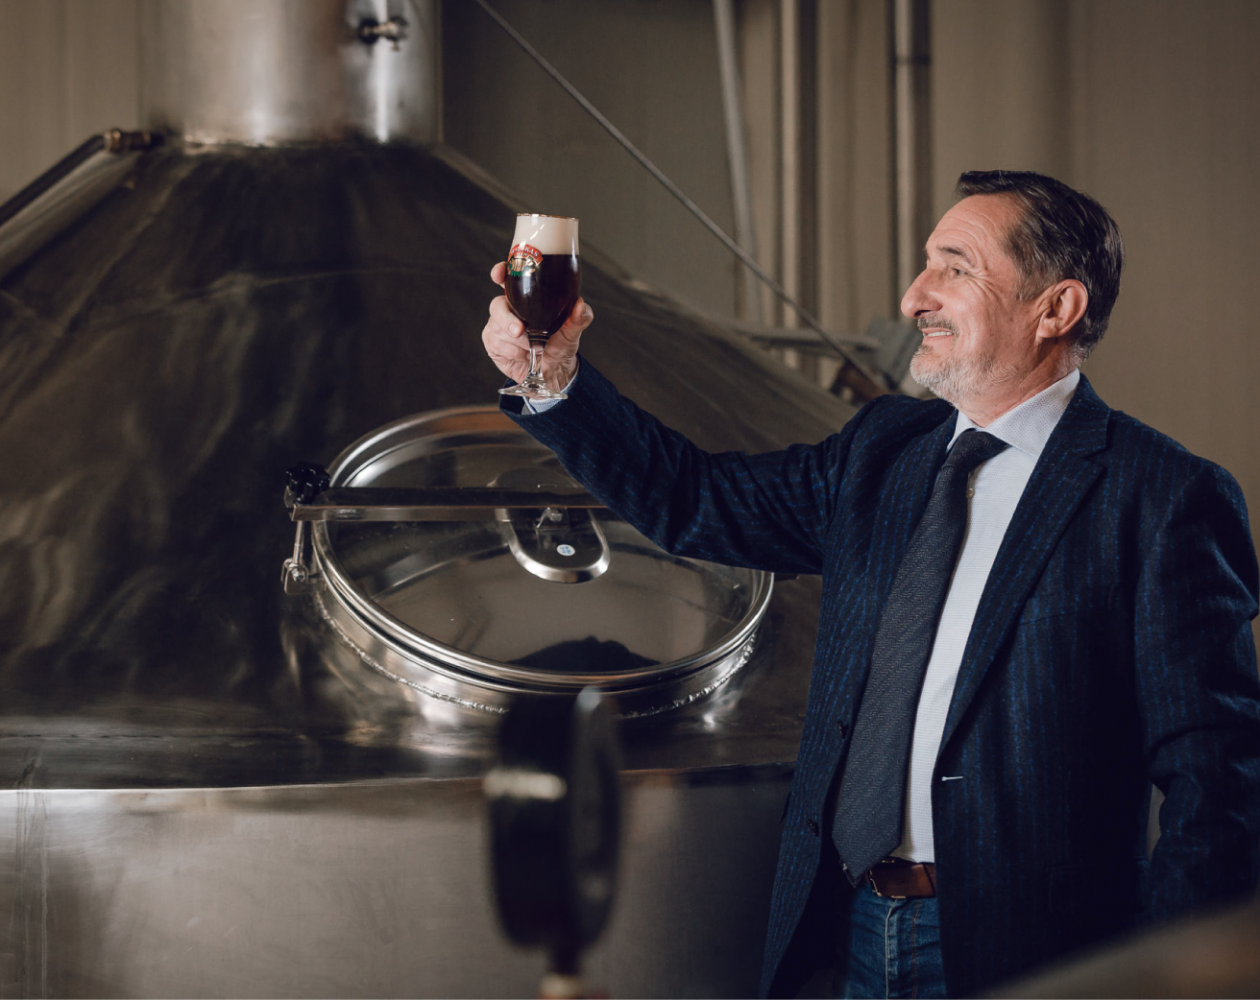 Bauska brewery's sales volume is growing